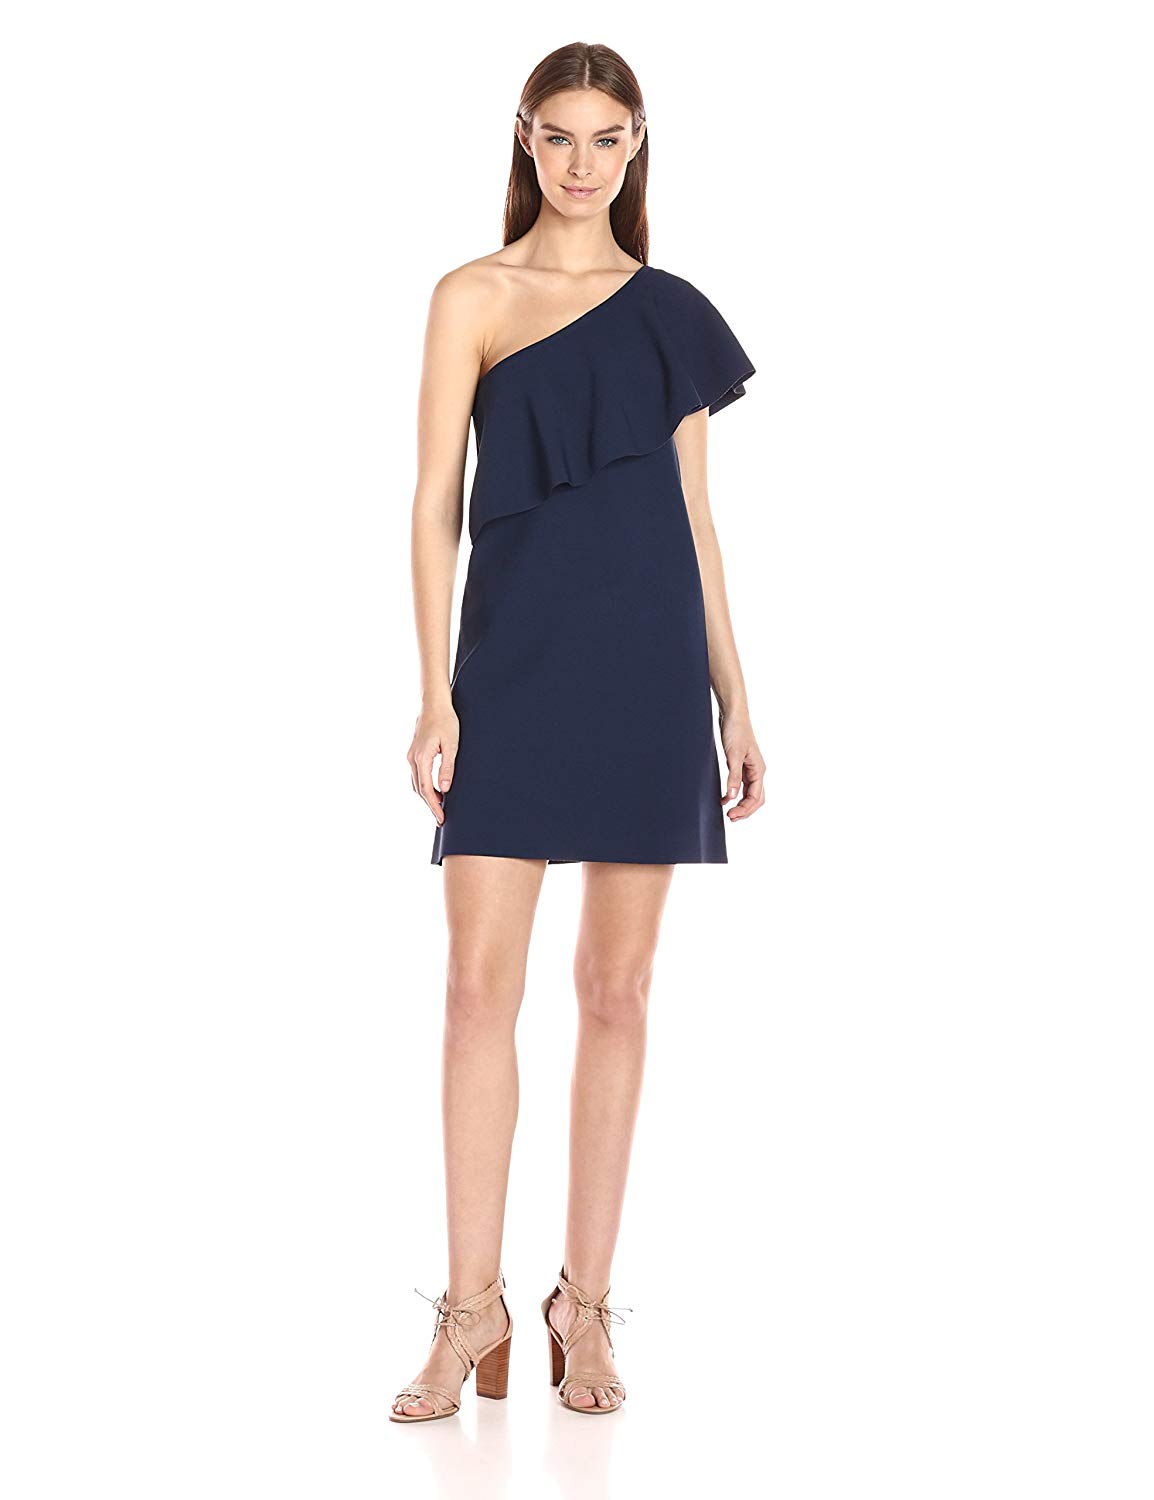 Milly One Shoulder Flounce Dress - size P